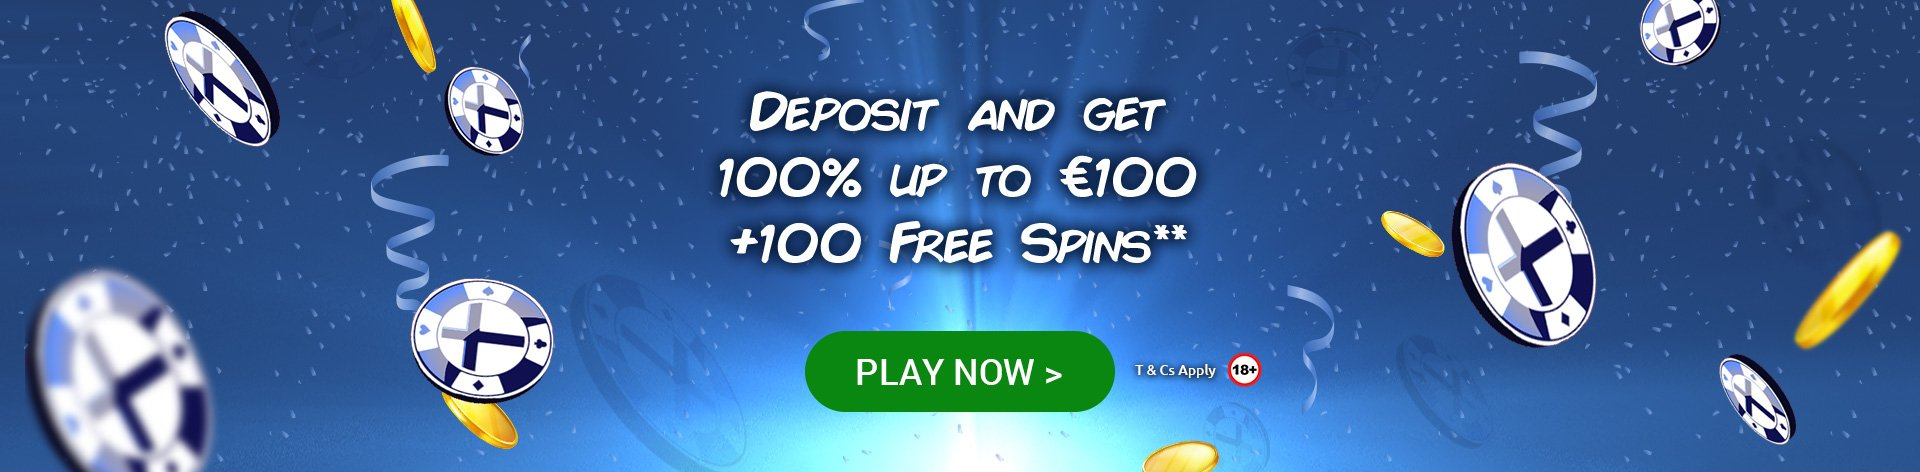 Deposit and get 100% up to €100 + 100 free spins!